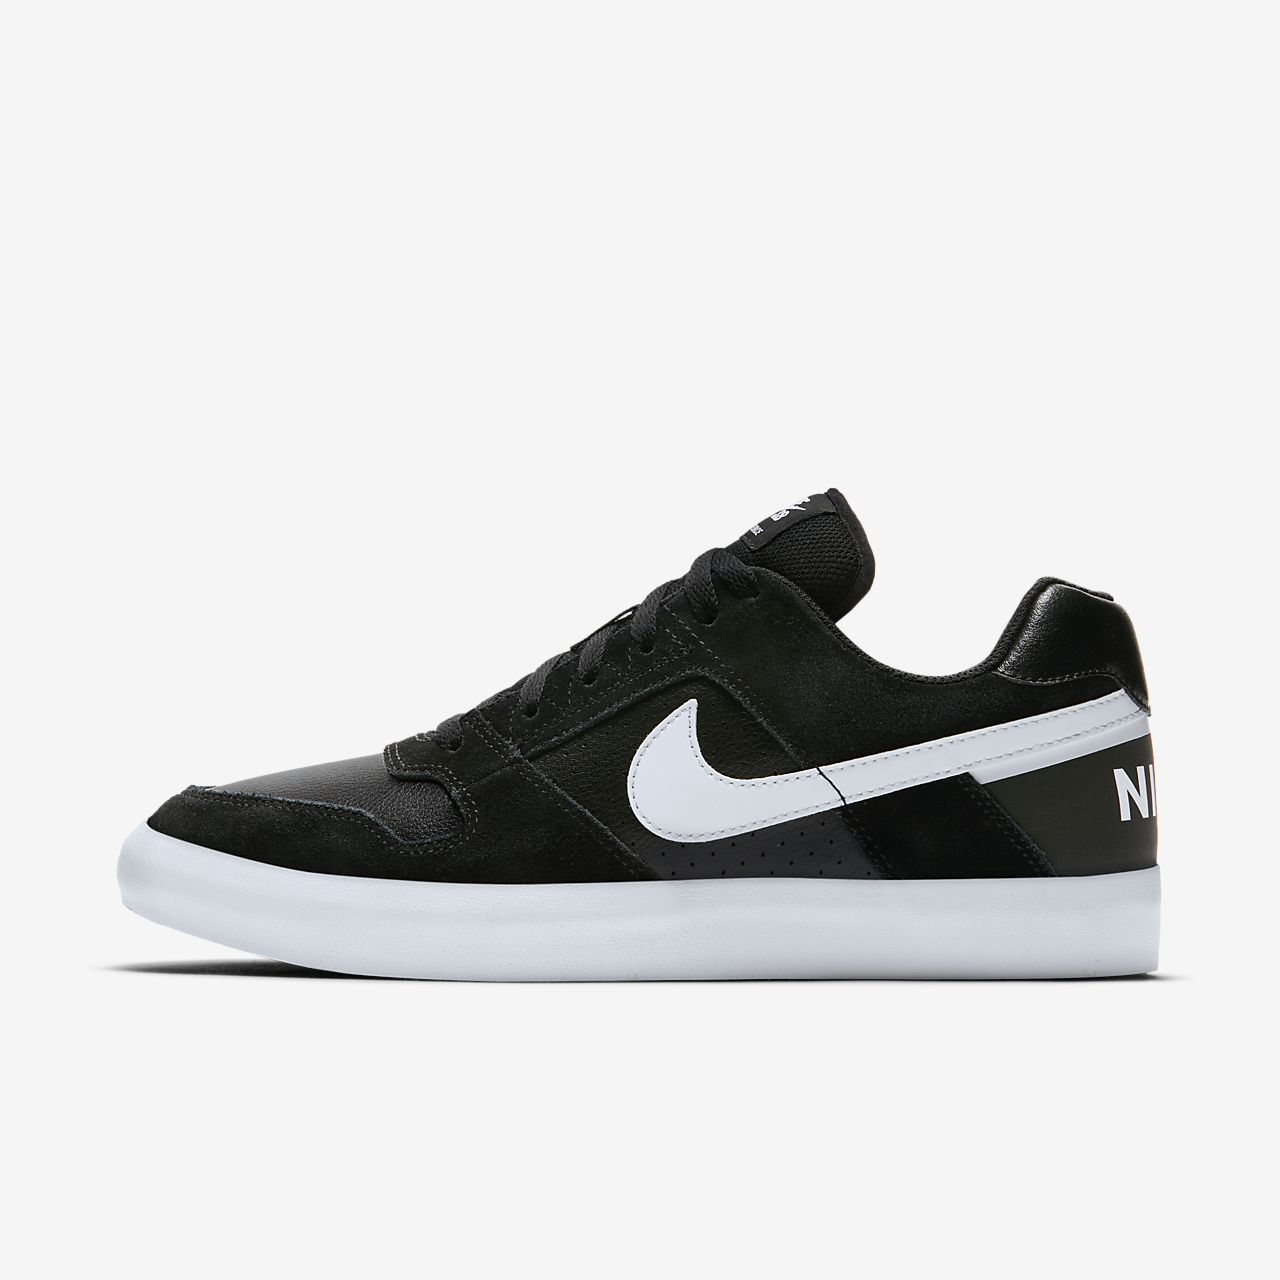 cb56c670f8d9 Details about Nike SB Delta Force Vulc Sports Skateboarding Shoes Sneakers  Trainers